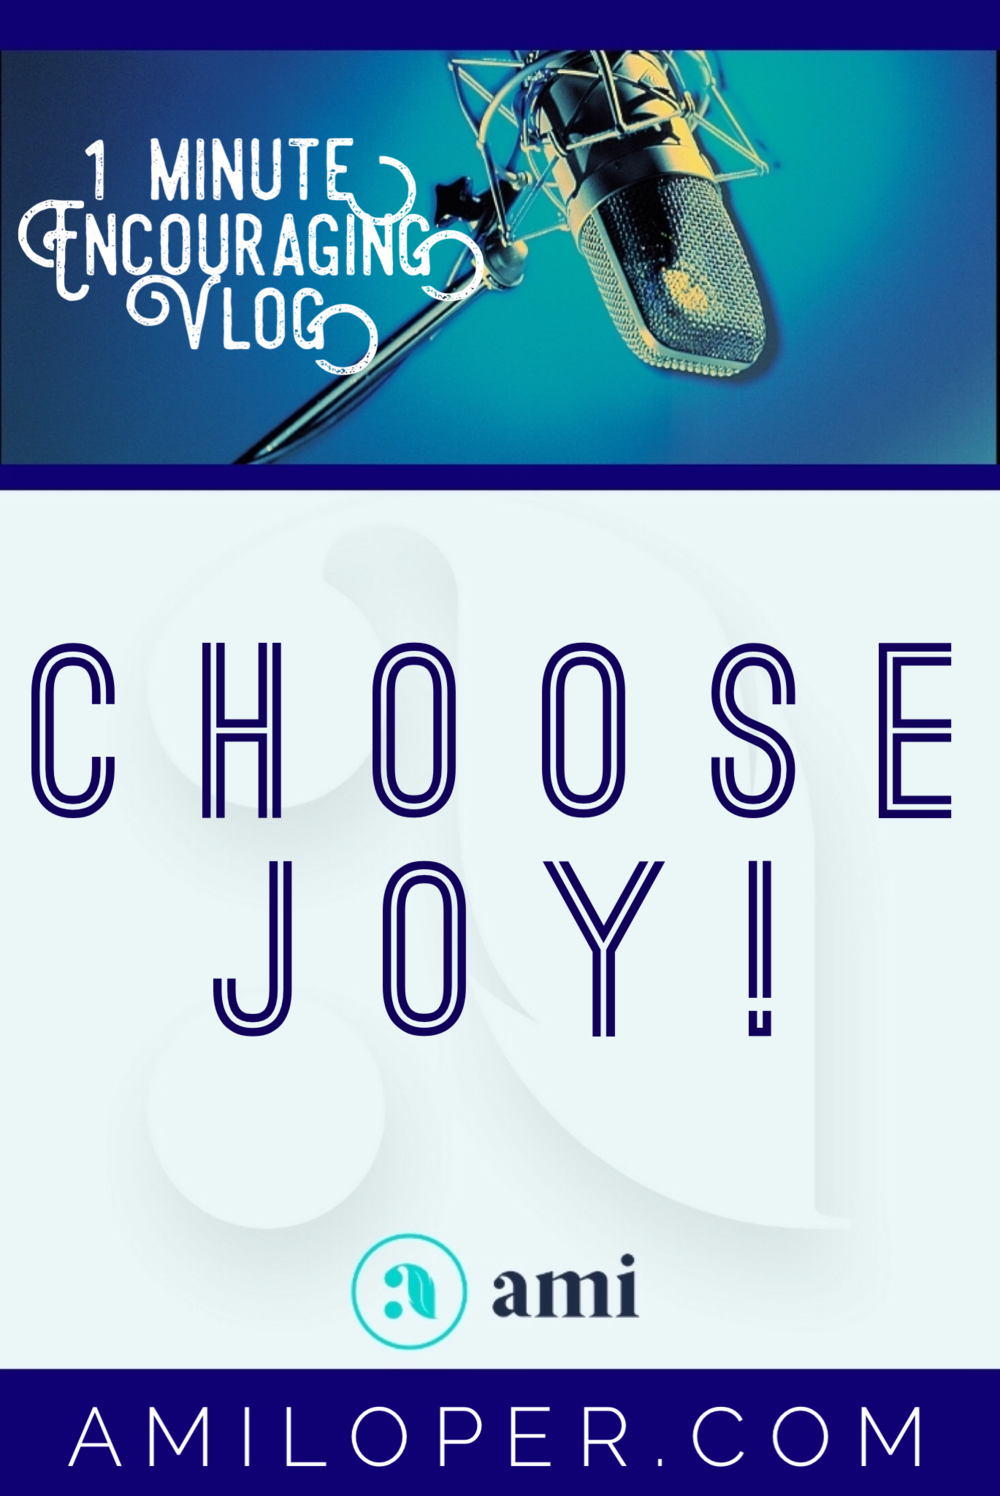 What are the four areas we need to watch that will either guard our joy or sabotage it? #ChooseJoy #vlog #Selfcare